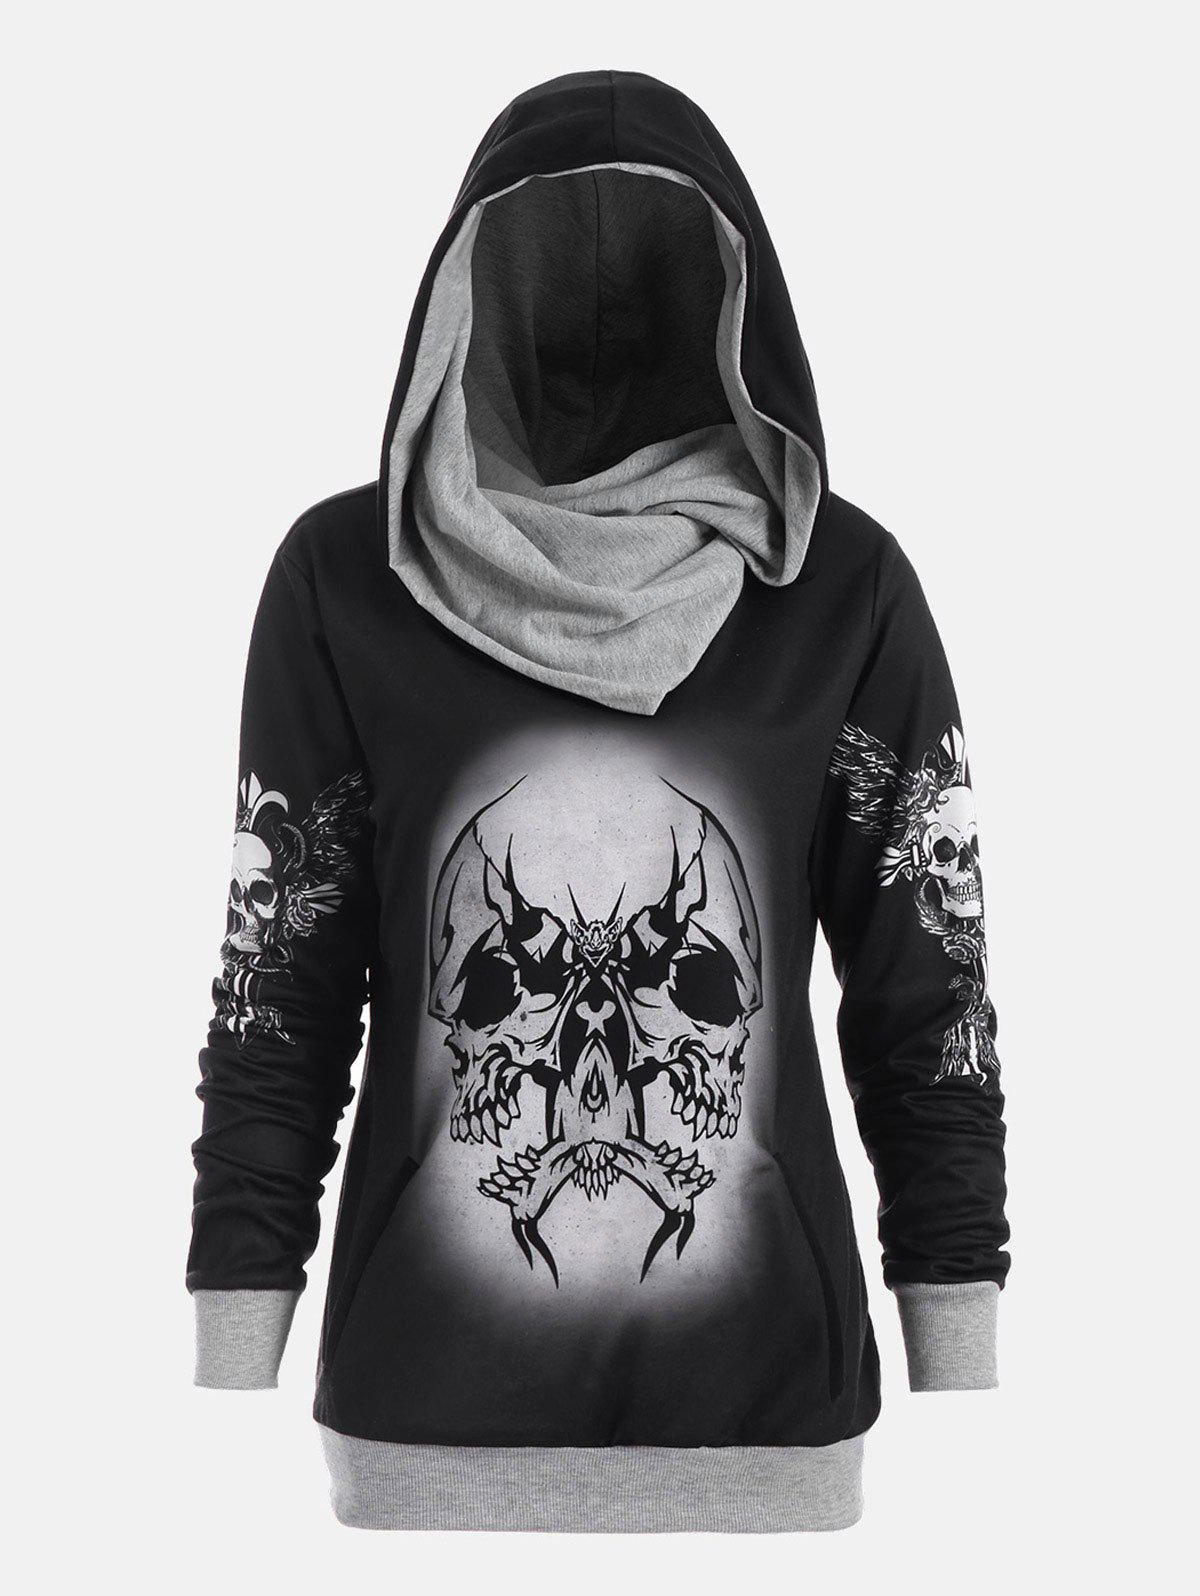 Skull and Wings Print Halloween Hoodie - GRAY L